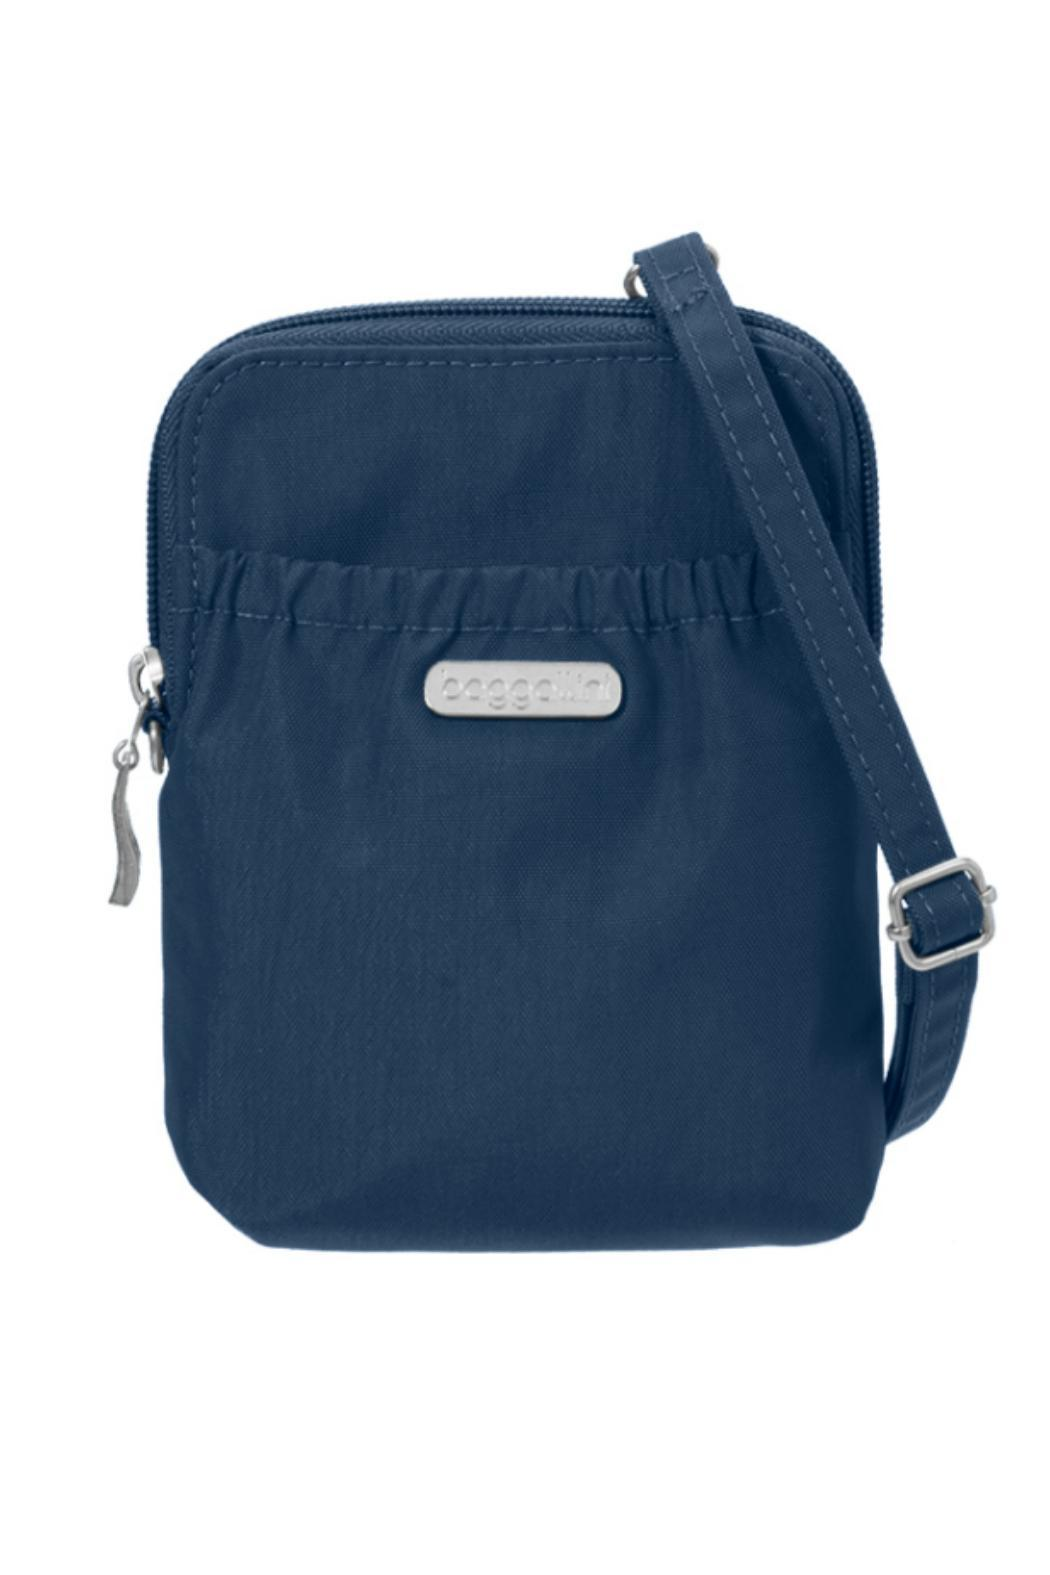 Baggallini Bryant Pouch - Main Image